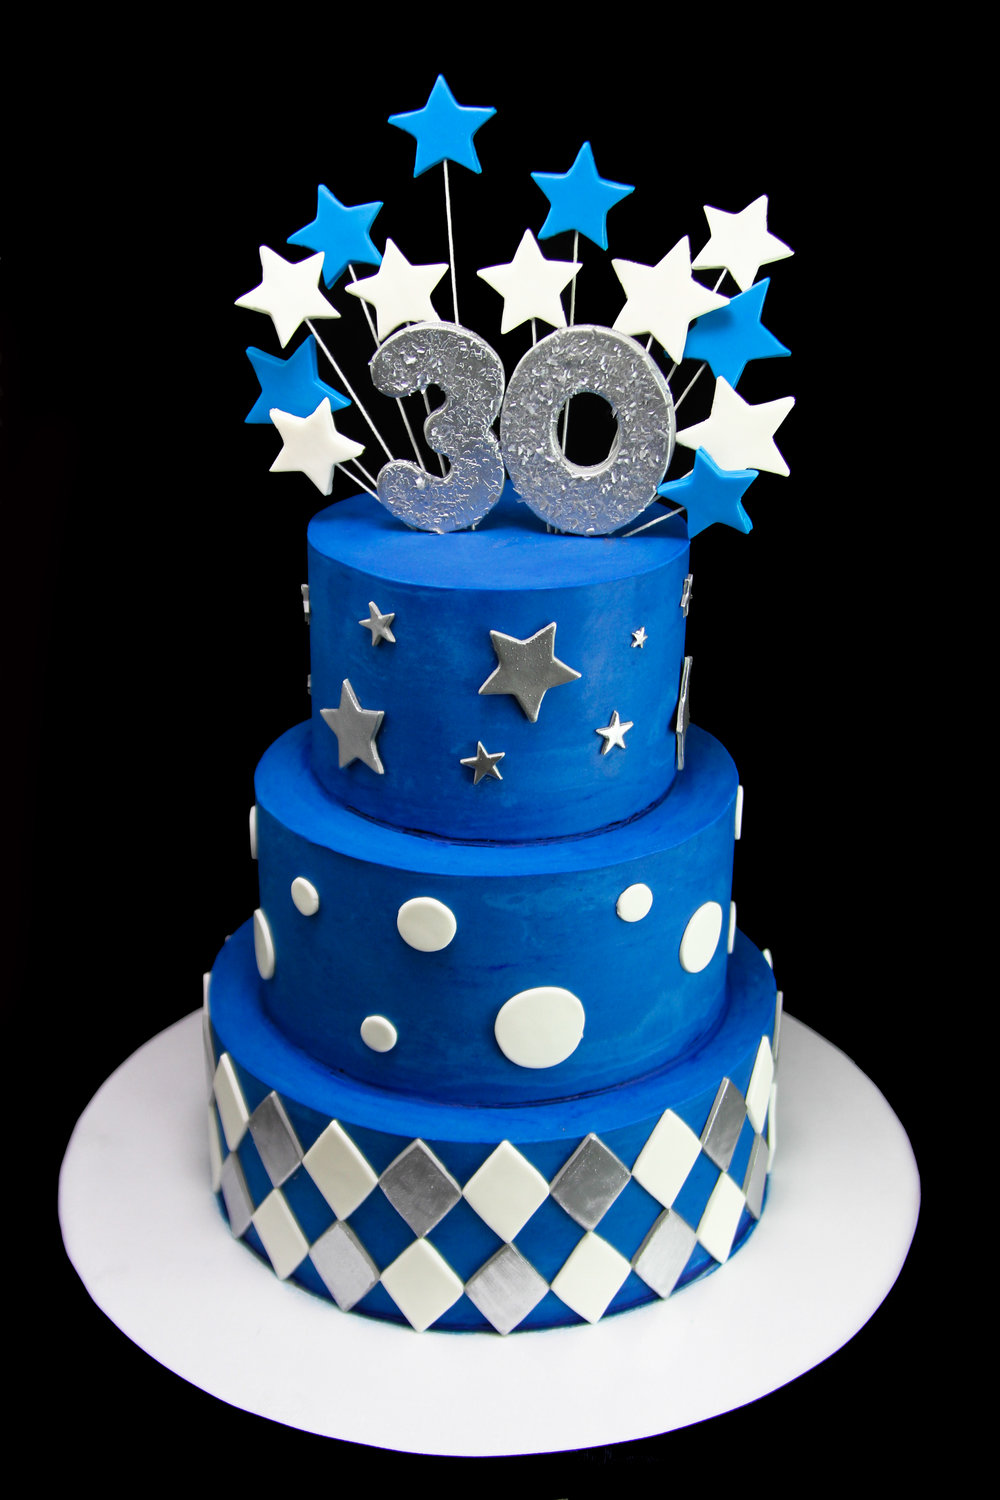 Chevron 30th Birthday Cake.jpg